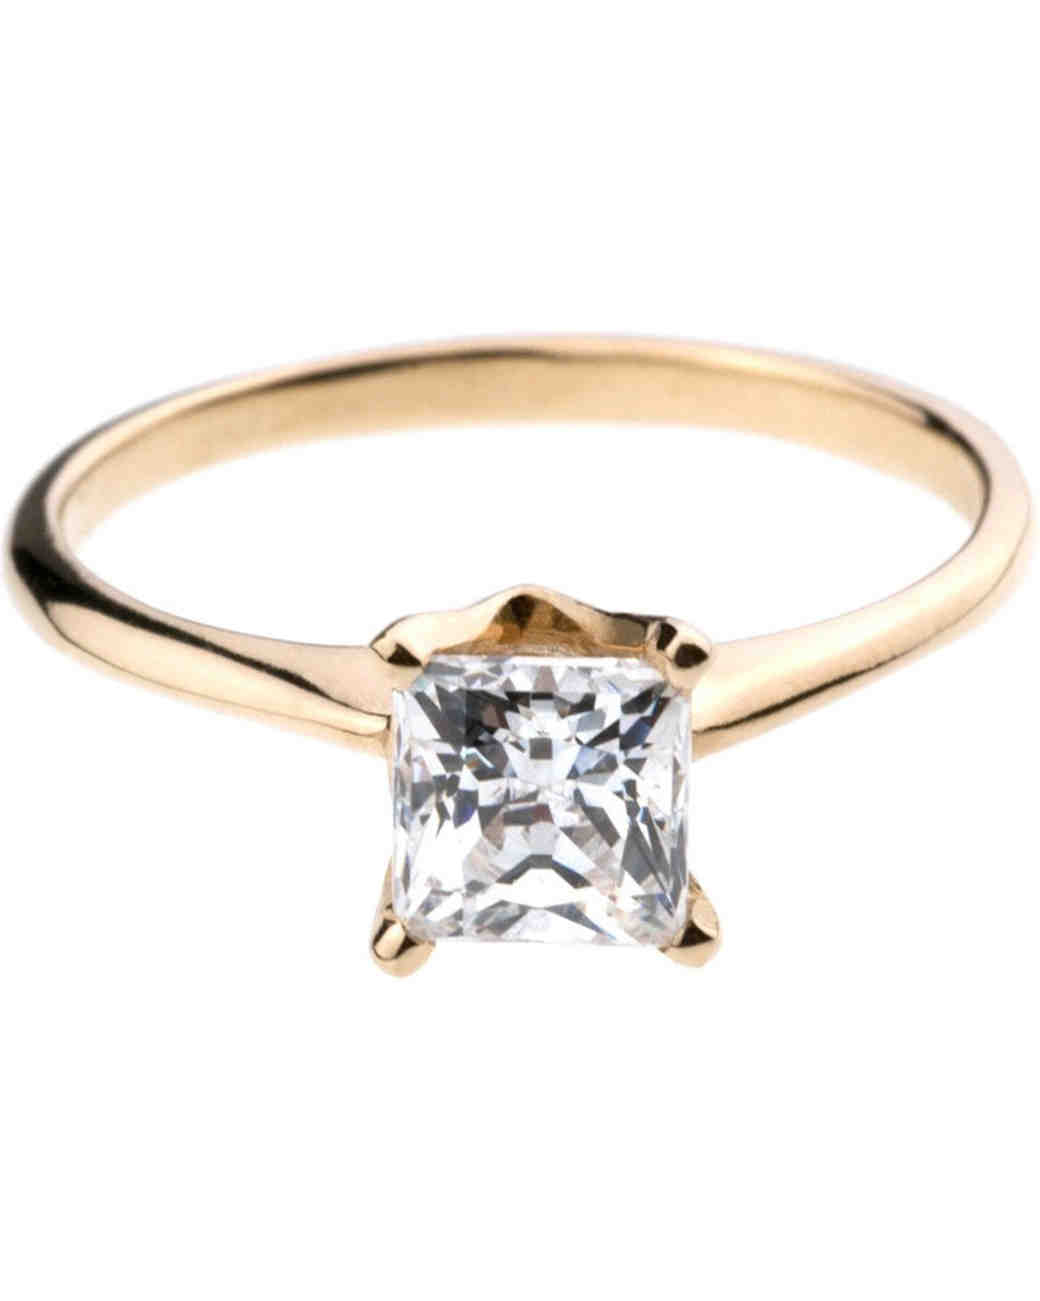 ring webstore solitaire gold category diamond square number flower product engagement white diamonds ernest point platinum l jones jewellery occasion rings